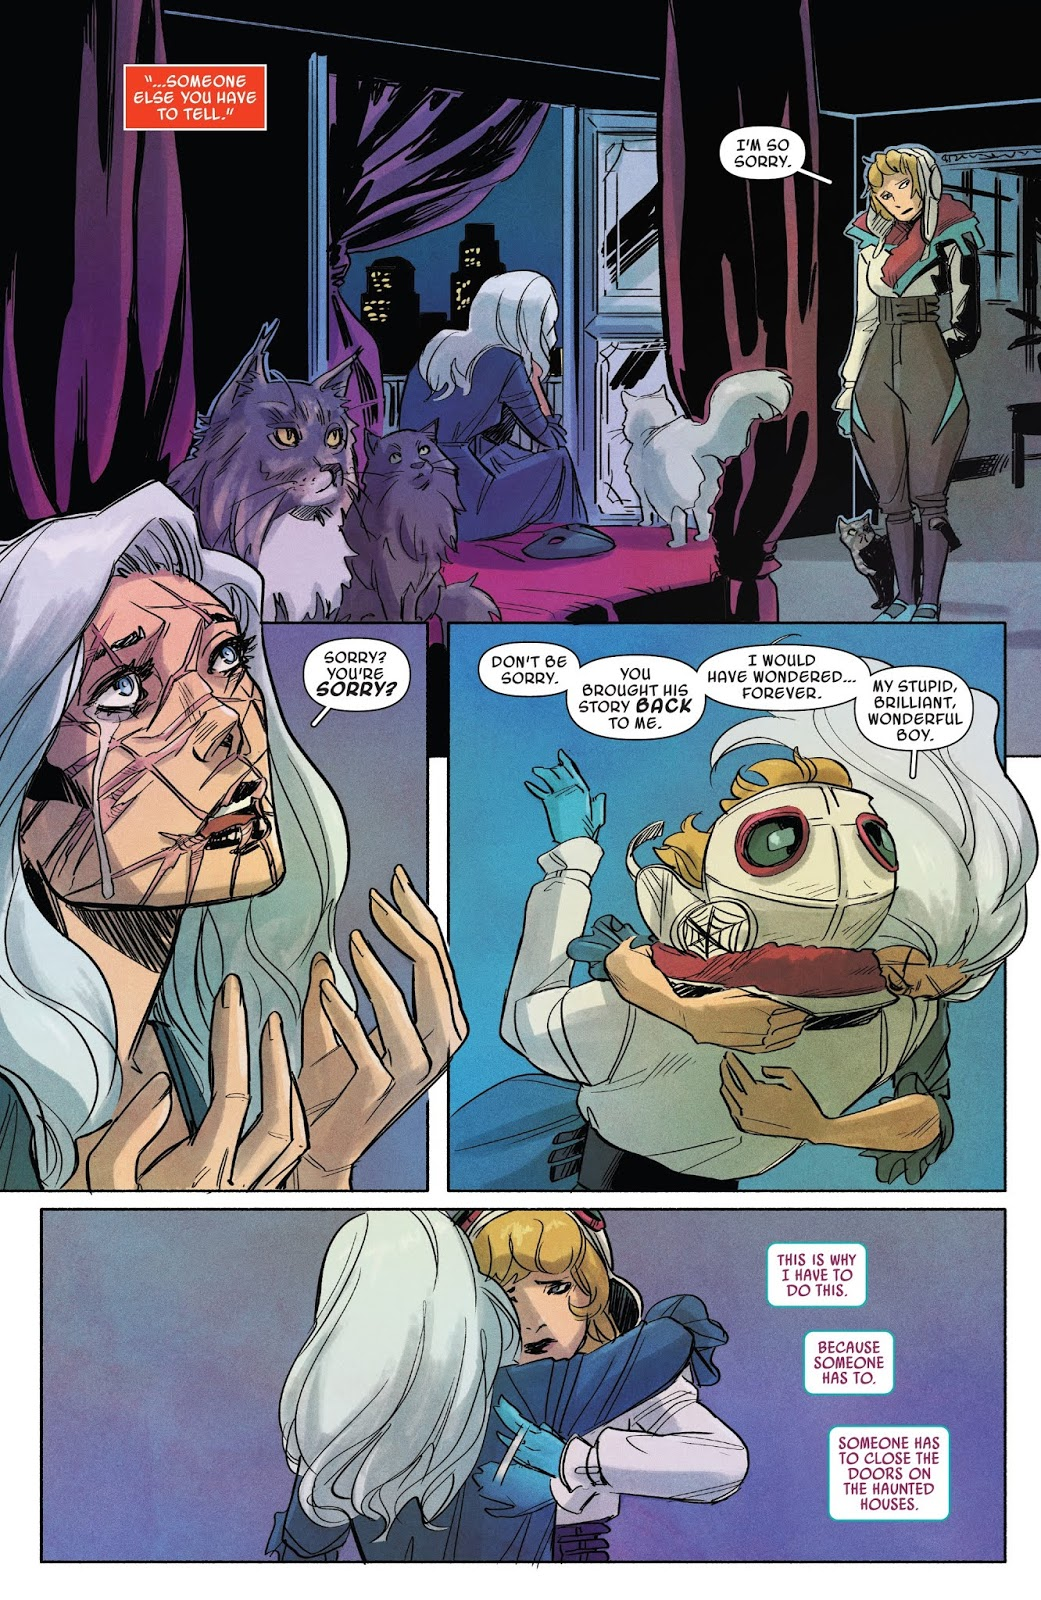 Spider gwen ghost spider no 4 review and recap - Best spider man noir comics ...